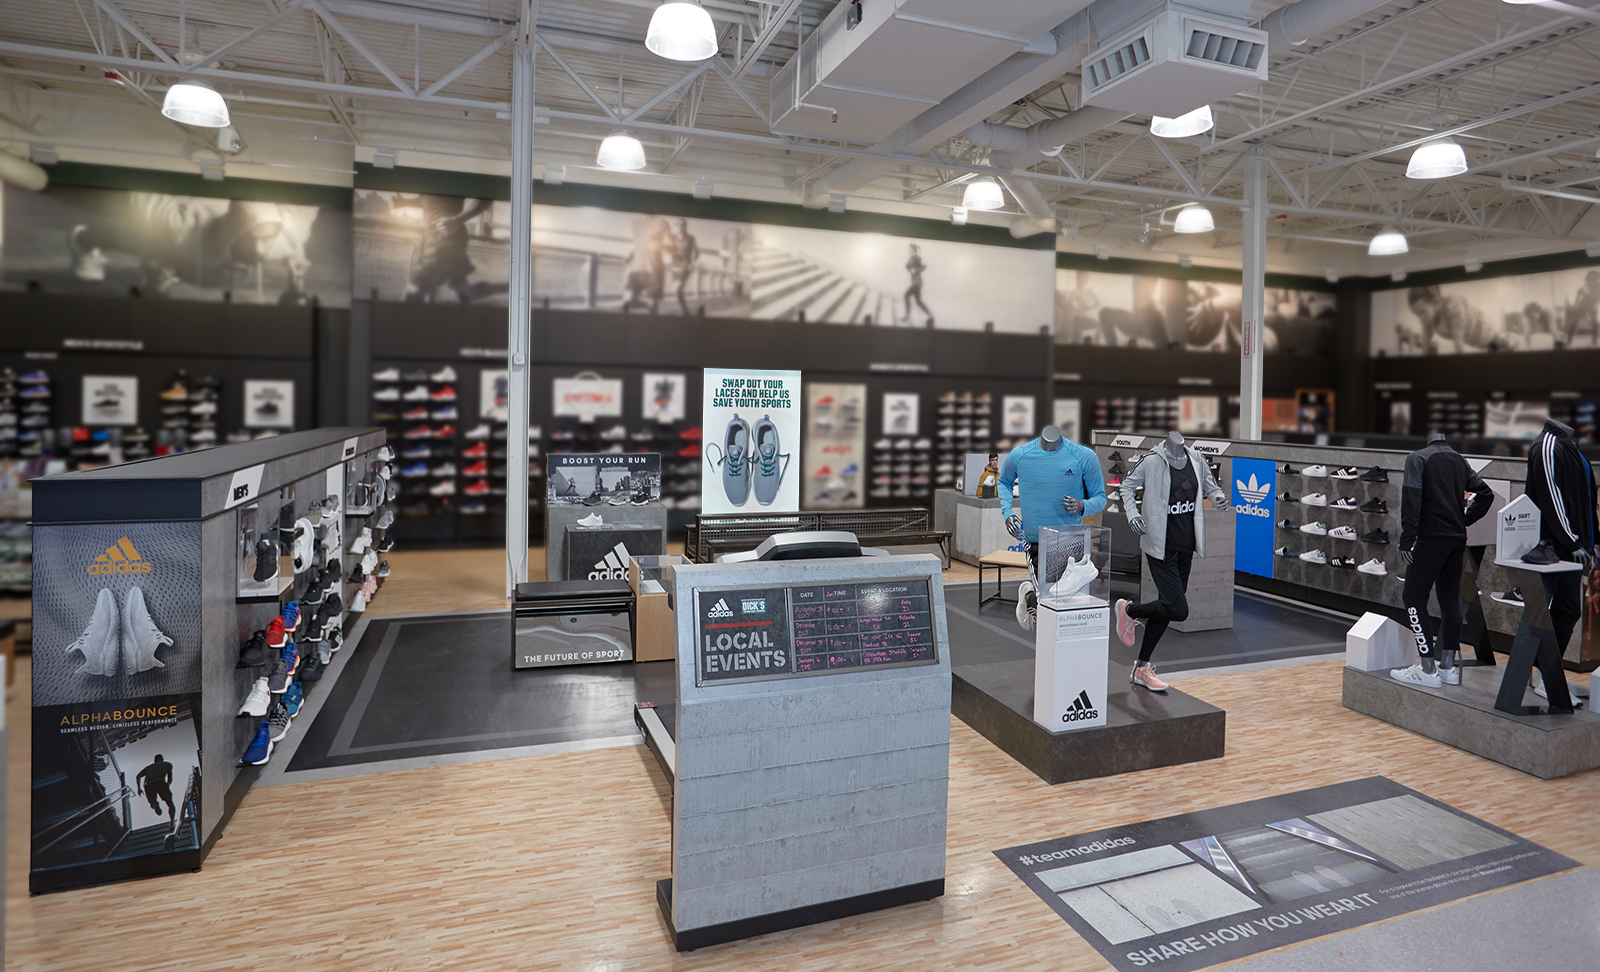 Full view of the custom designed space for Adidas that lives inside a sporting goods store.